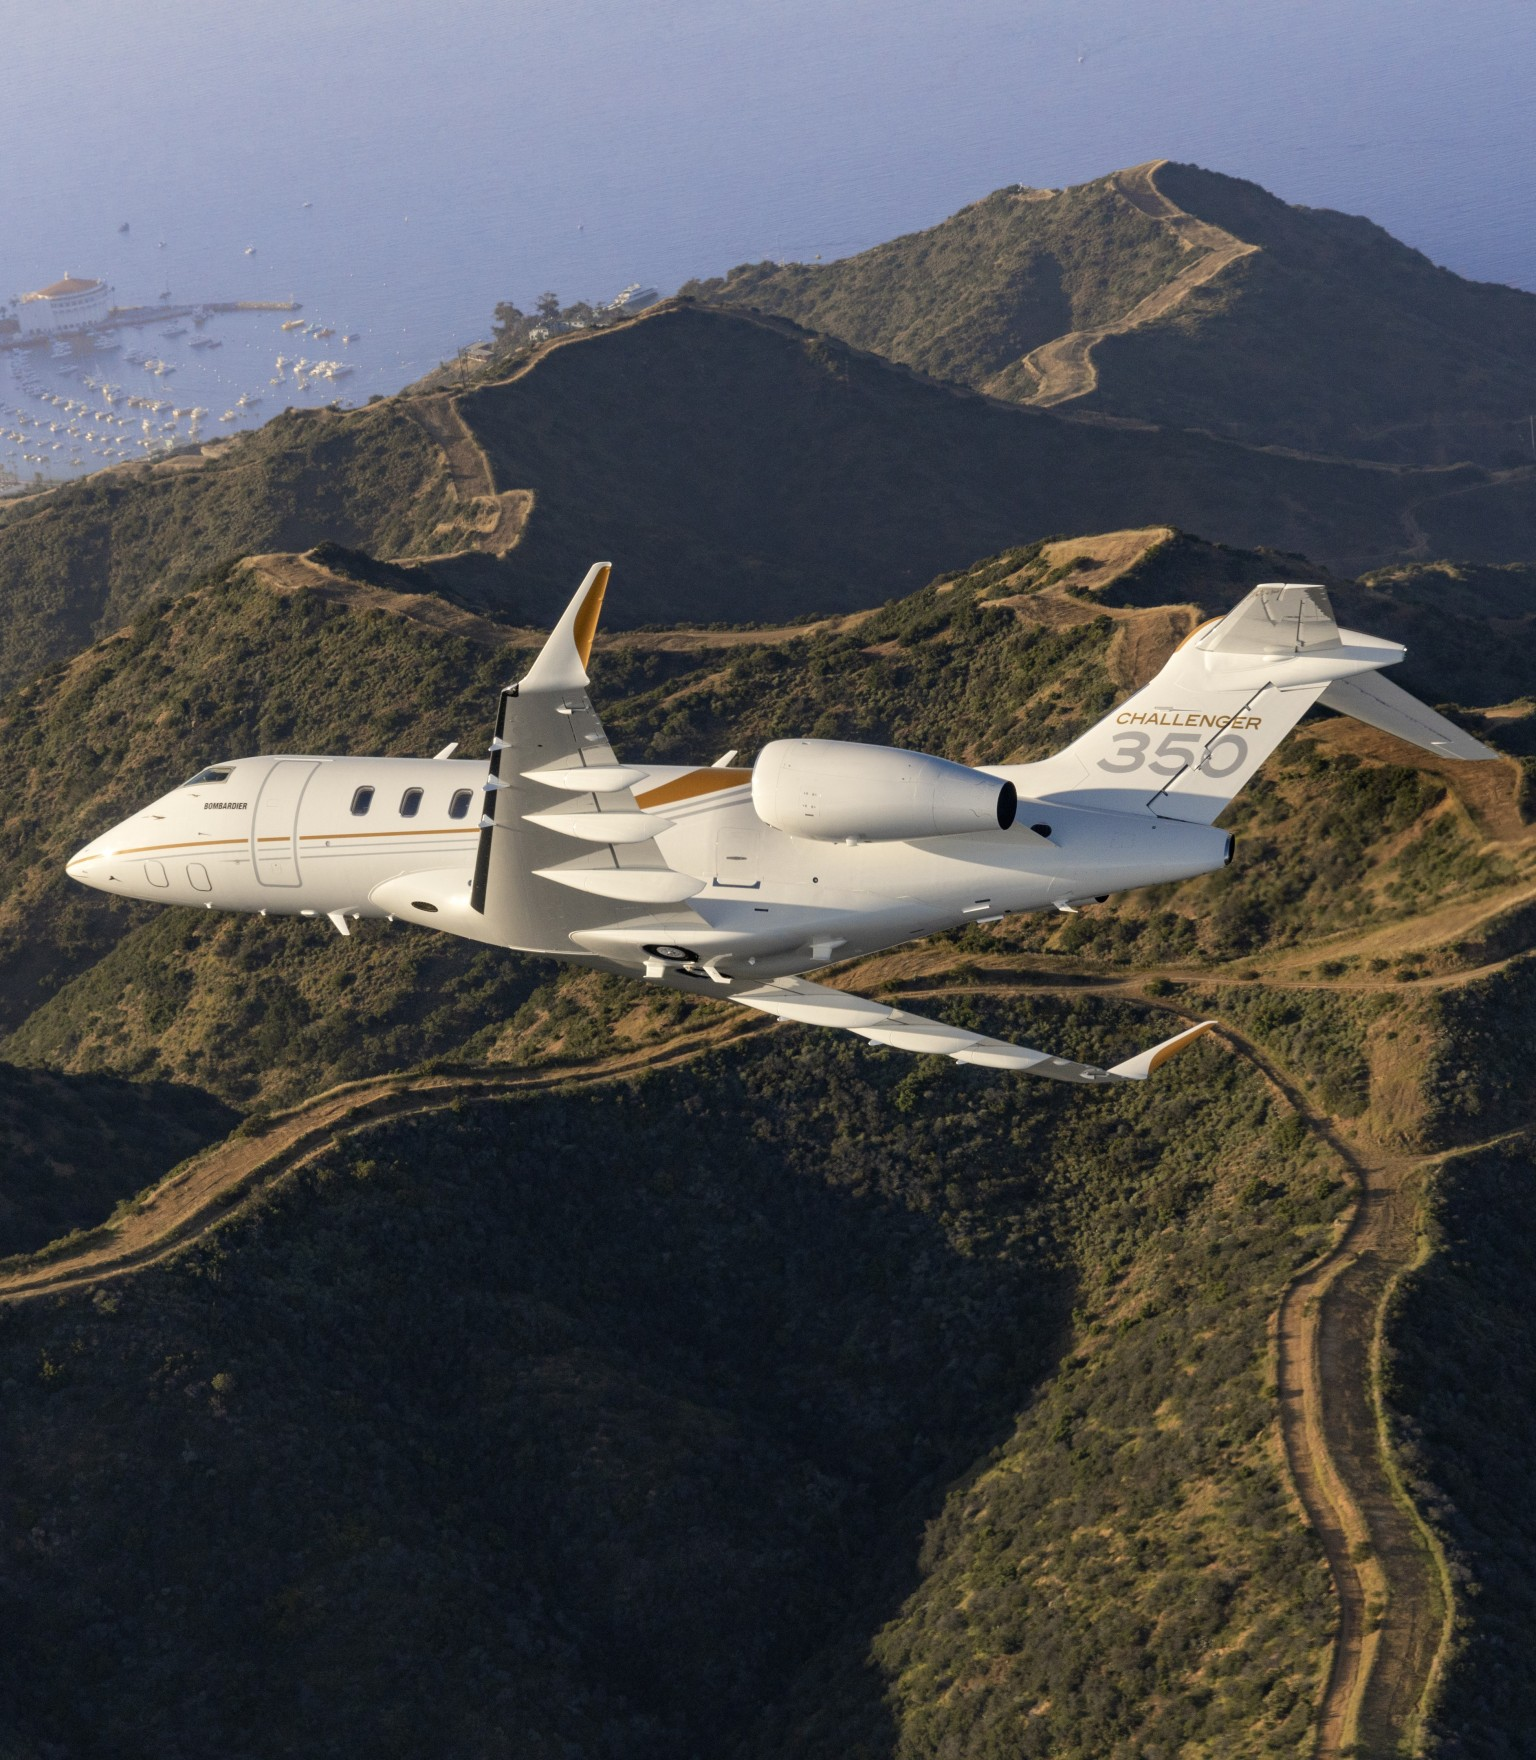 Challenger 350 over Mountains